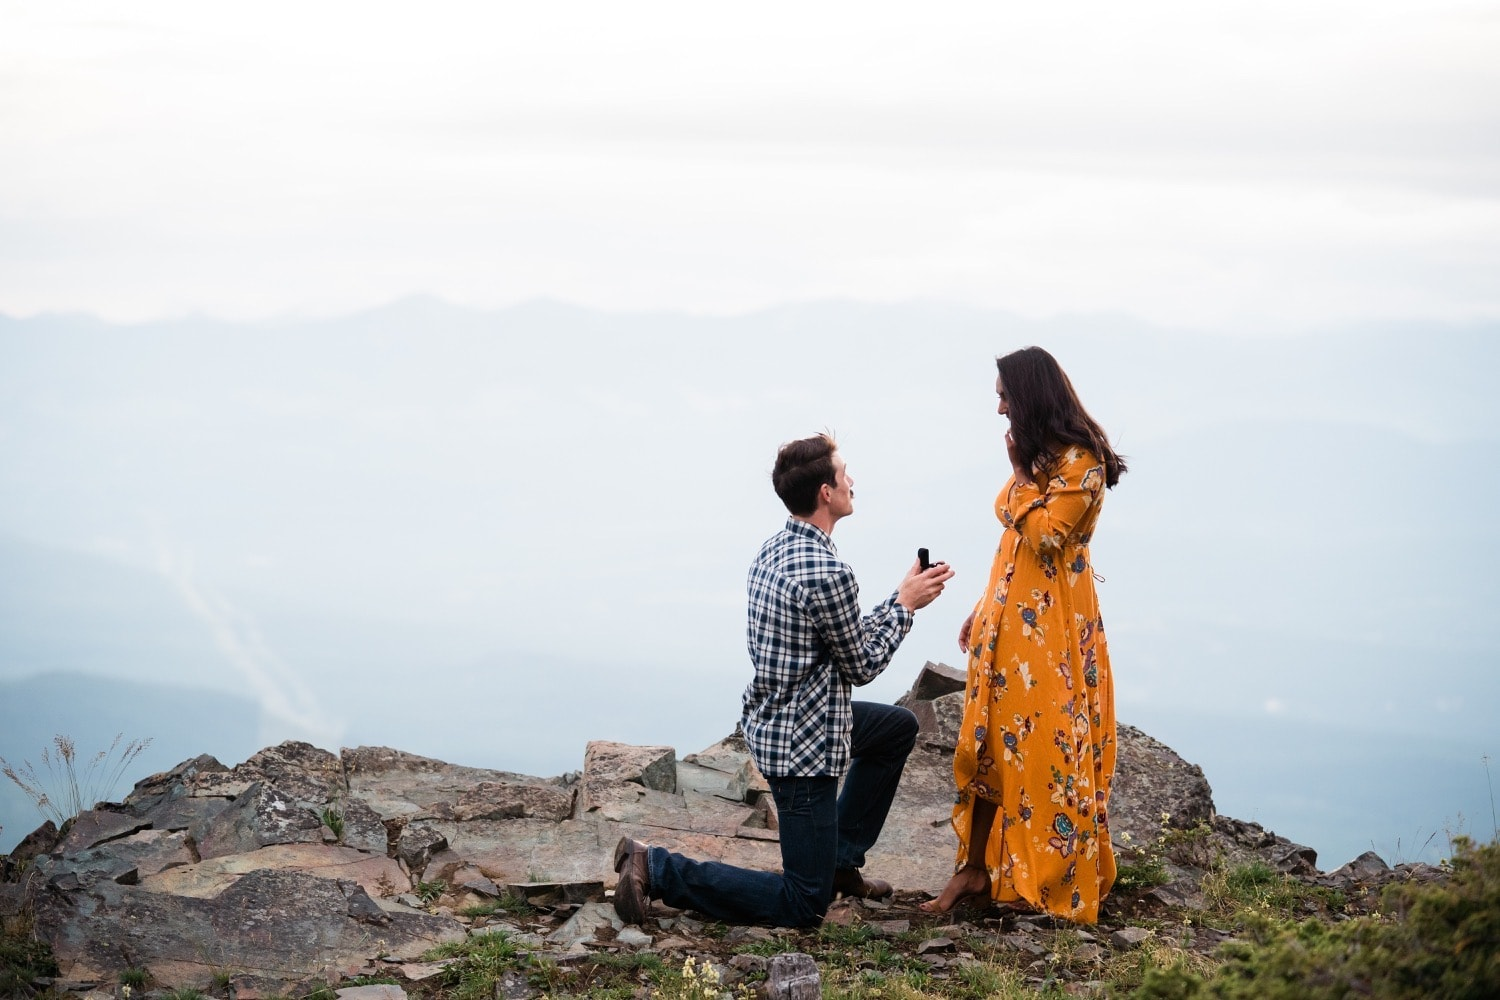 A man in jeans and a blue plaid shirt is down on one knee asking his girlfriend to marry him during their adventurous photography session in Cranbrook, BC